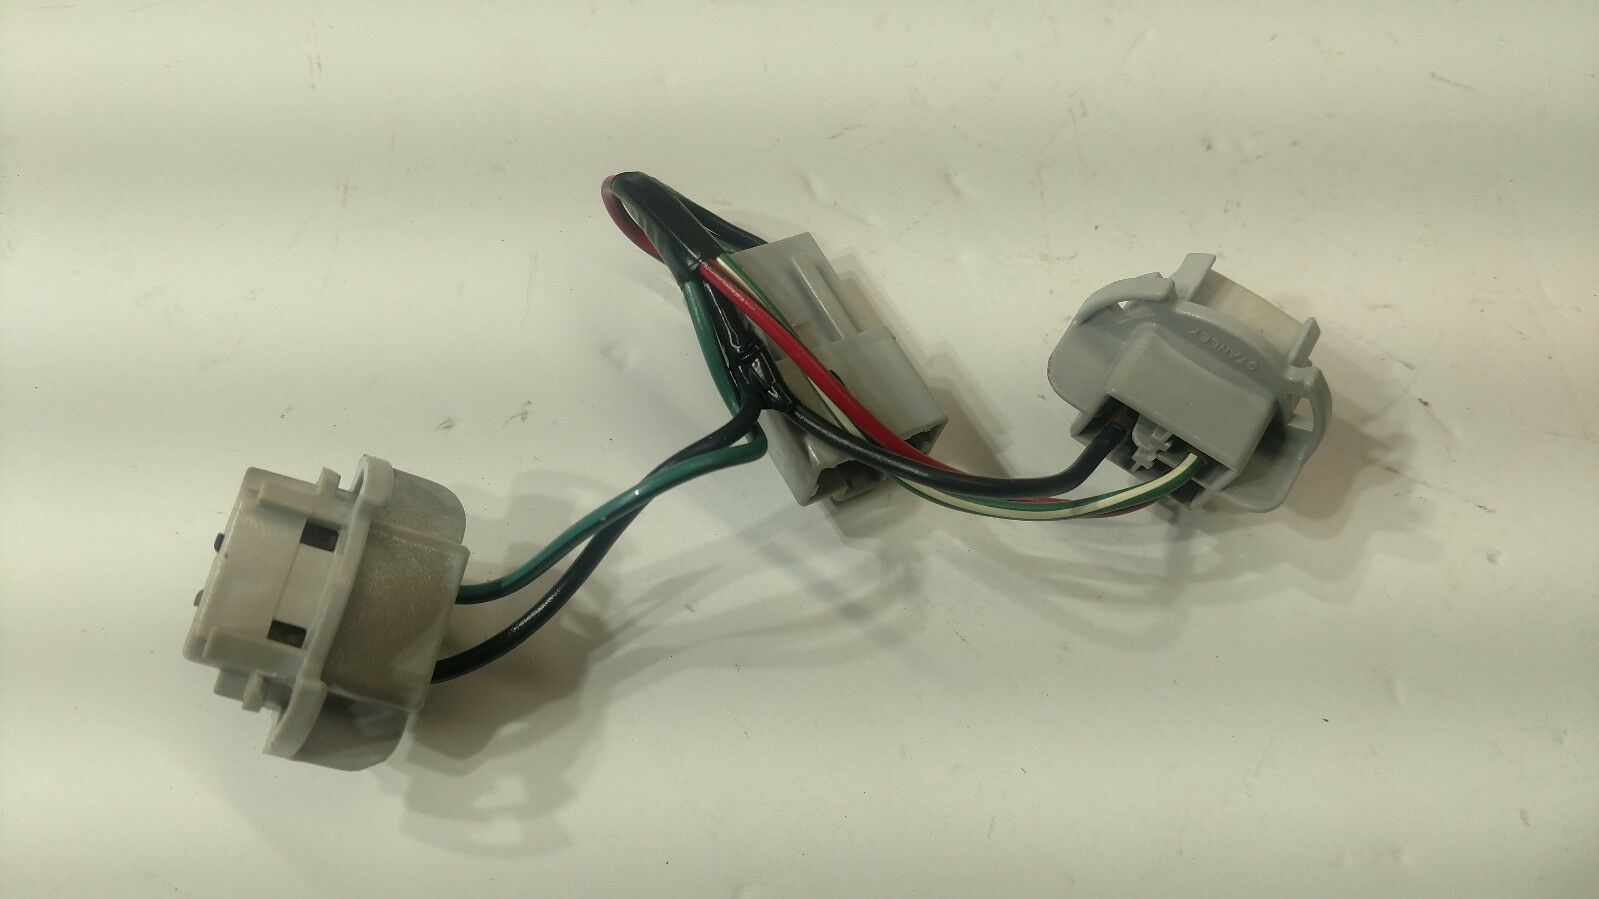 Used 2004 Honda S2000 Tail Lights For Sale Wiring Harness 1996 2000 Civic Oem Light Bulb Socket Connector Wire Plug Holder Turn